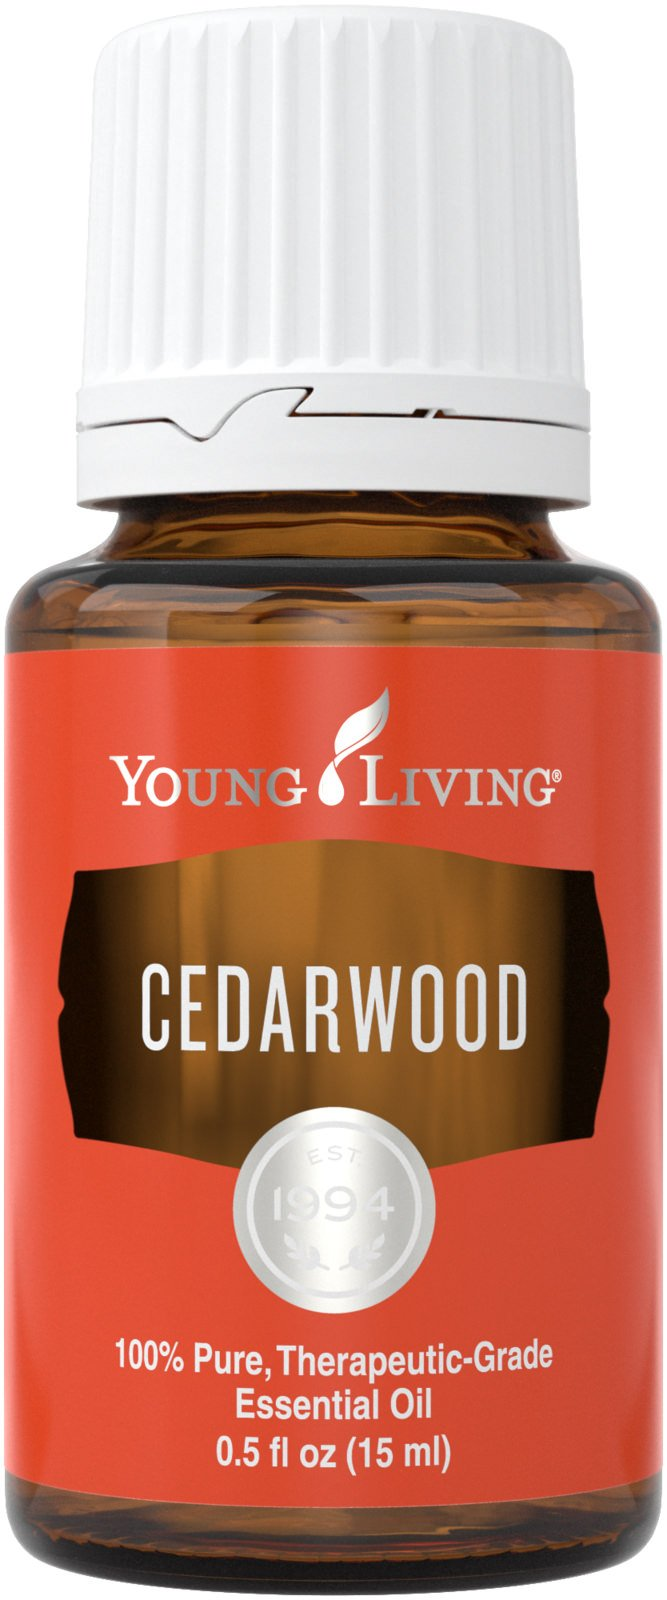 Cedarwood Essential Oil 15ml by Young Living Essential Oils